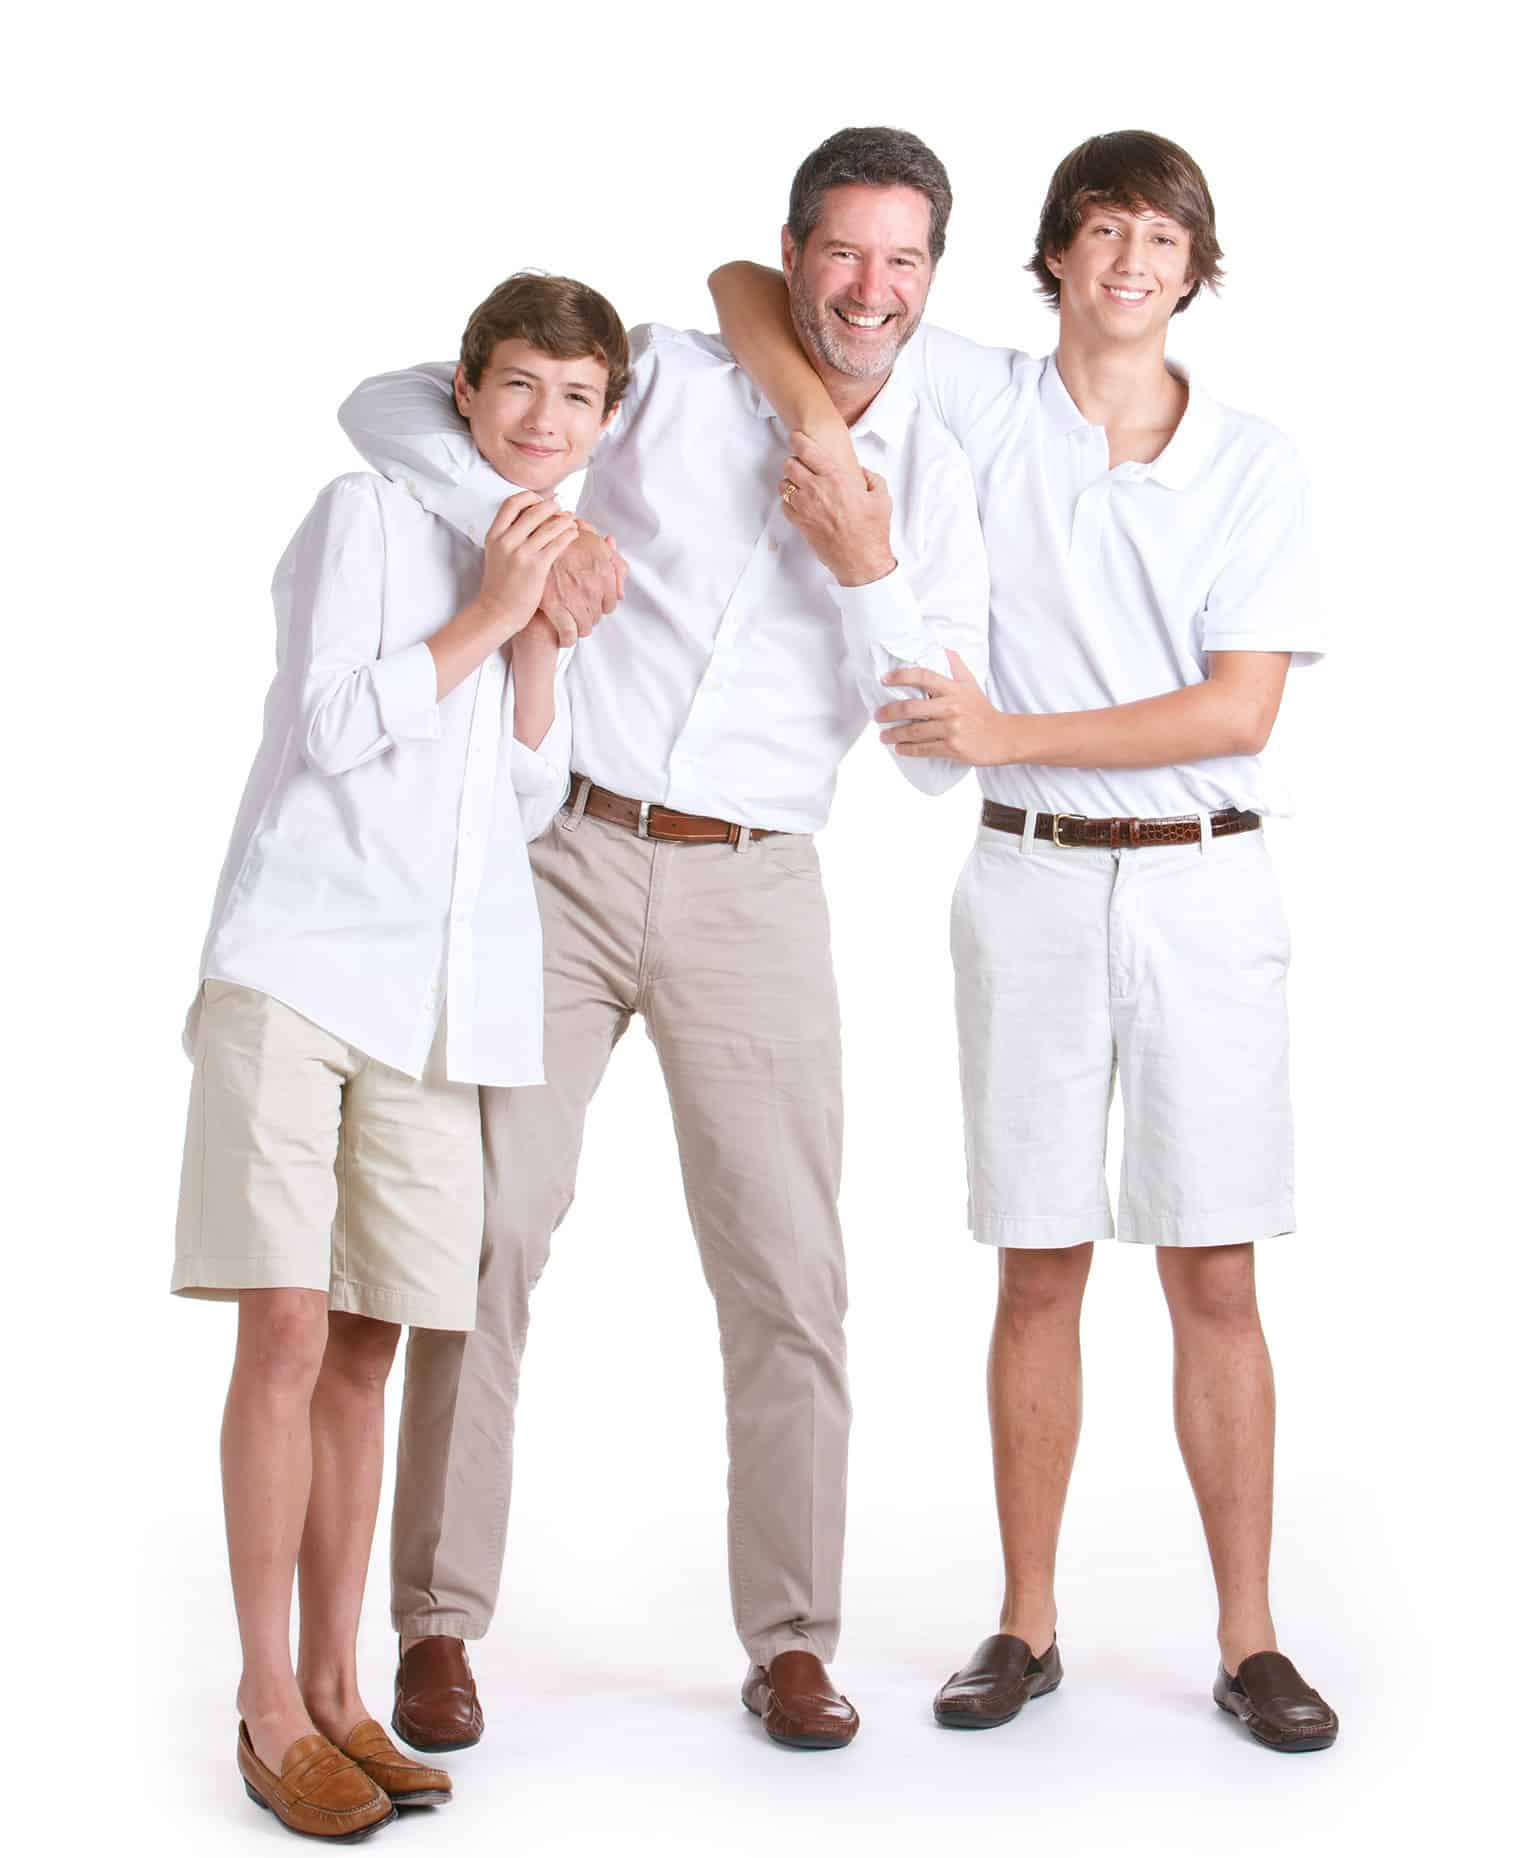 Fathers_day_photos_at_Houston_photography_studio